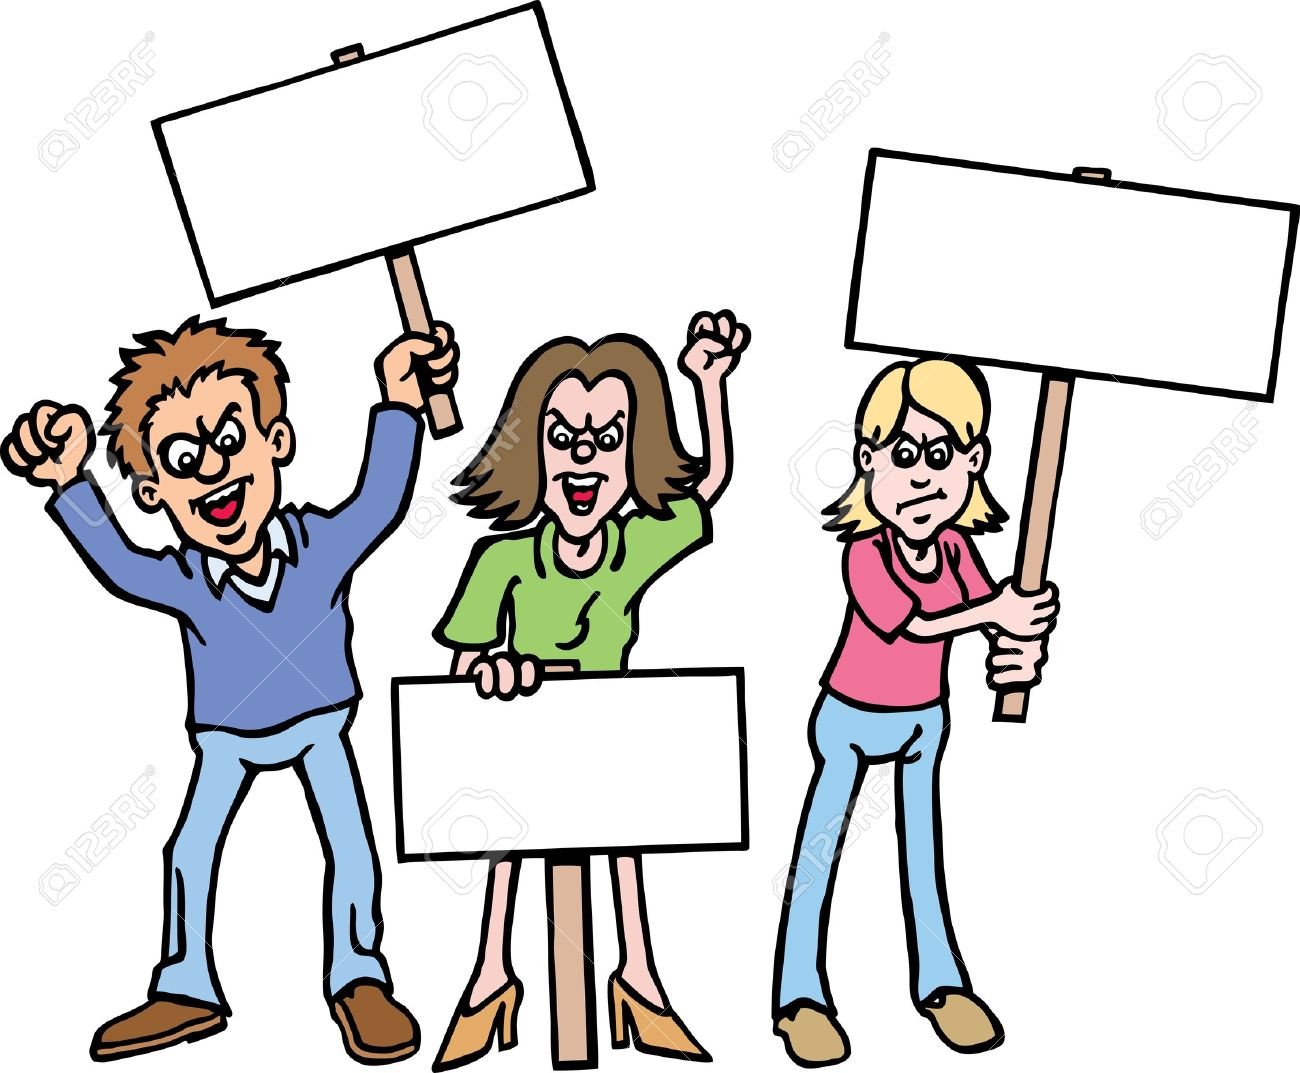 Protest Clipart #10.